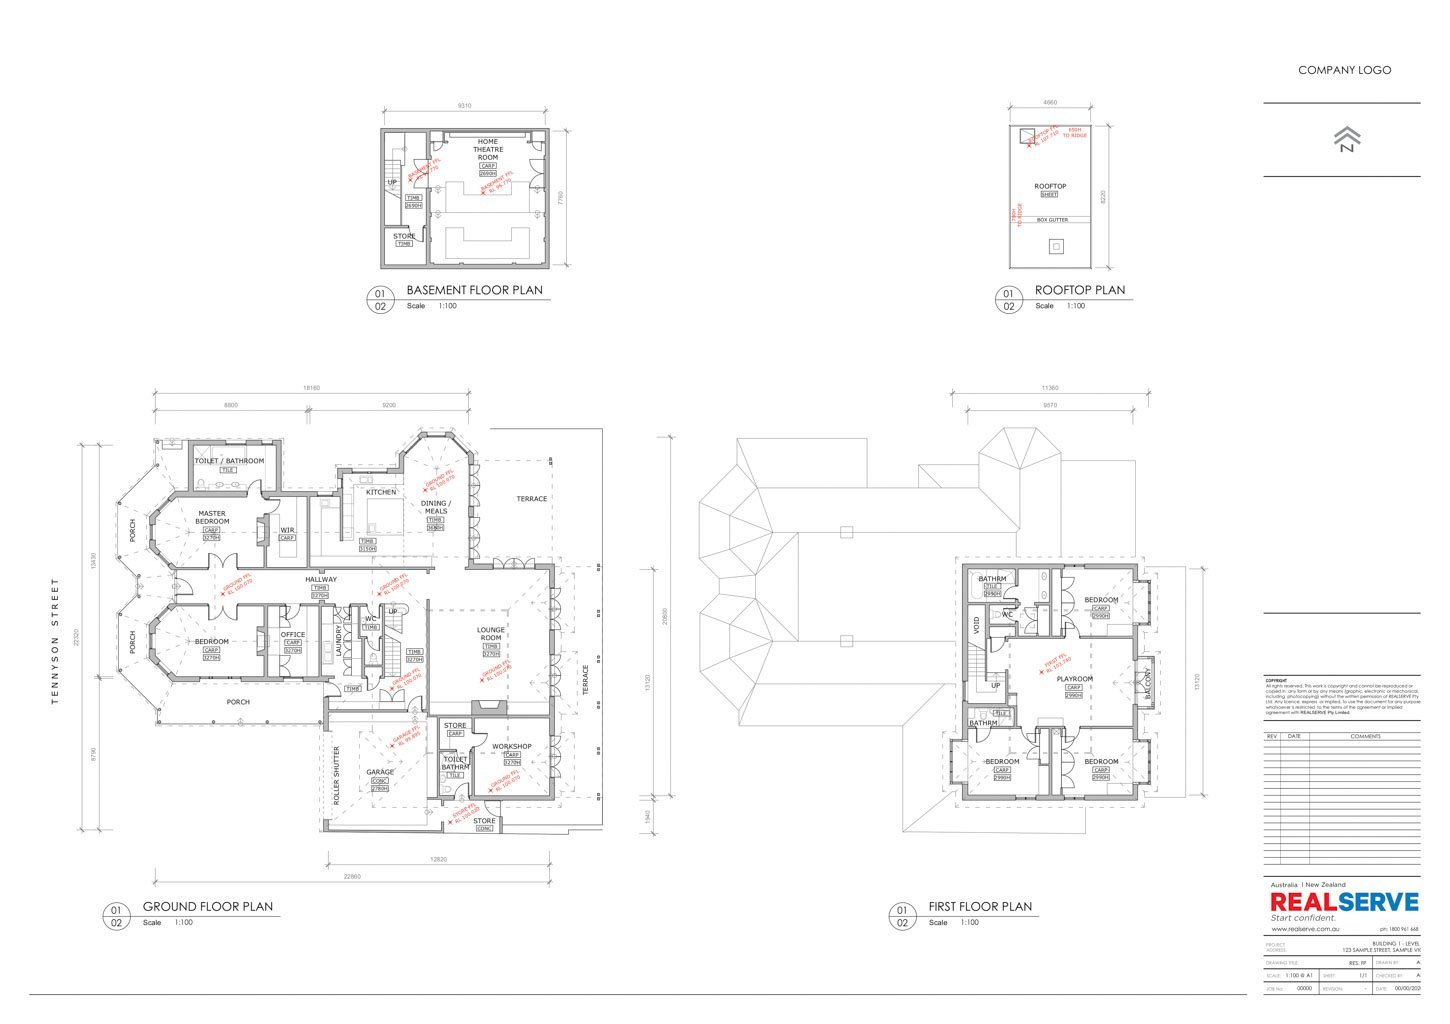 A SAMPLE OF A EXISTING CONDITION PLAN FOR A LARGE RESIDENTIAL PROPERTY SITE BY REALSERVE